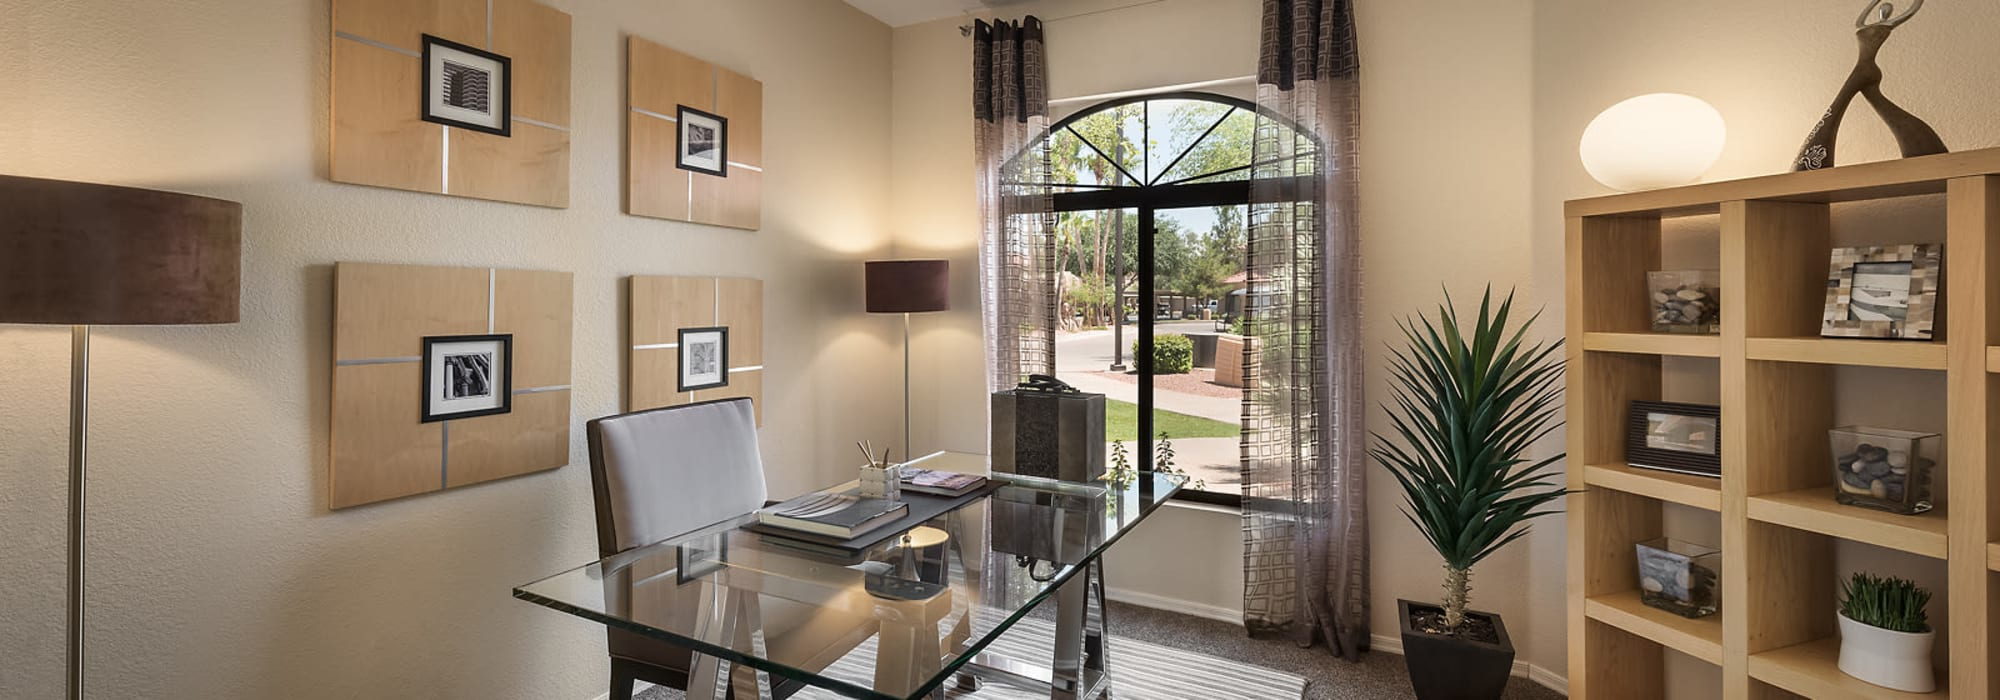 Luxury bedroom or office at San Cervantes in Chandler, Arizona